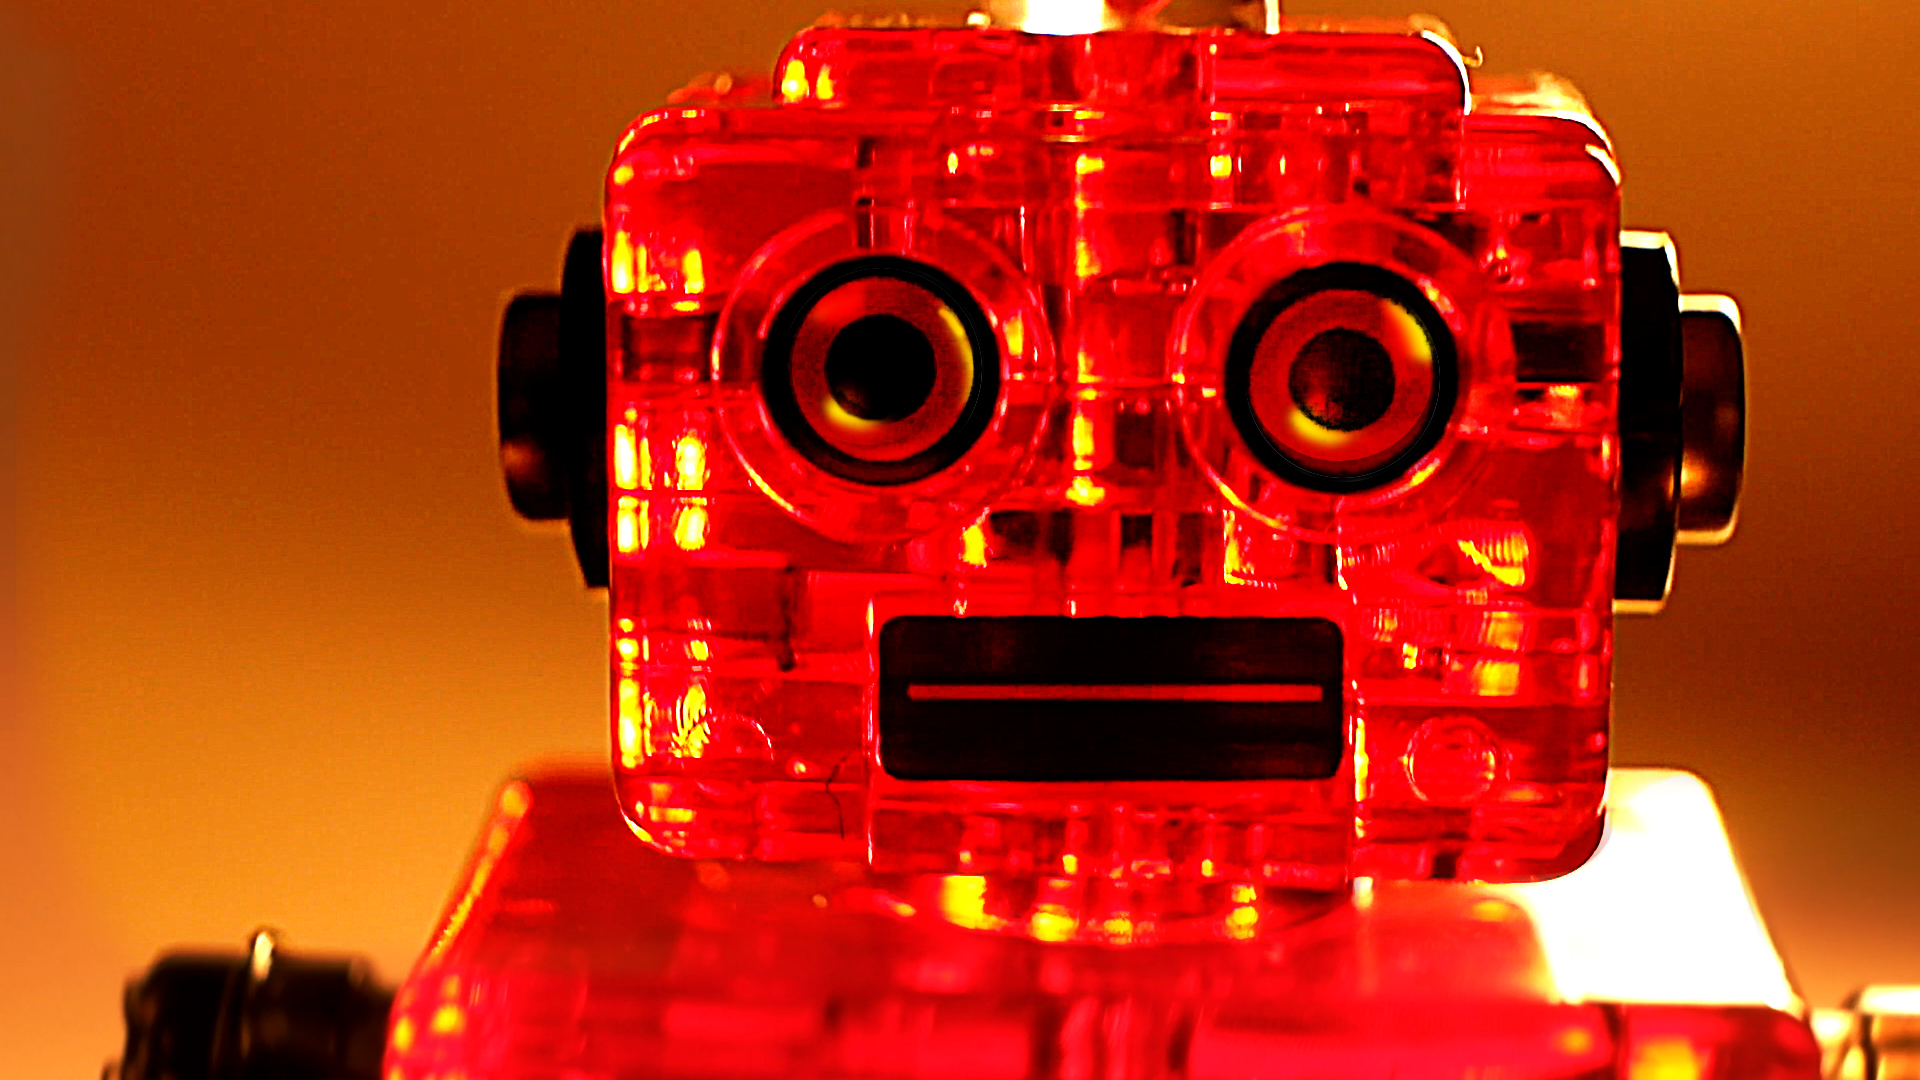 Sparkling Crystal Robot! - 3D Jigsaw Puzzle